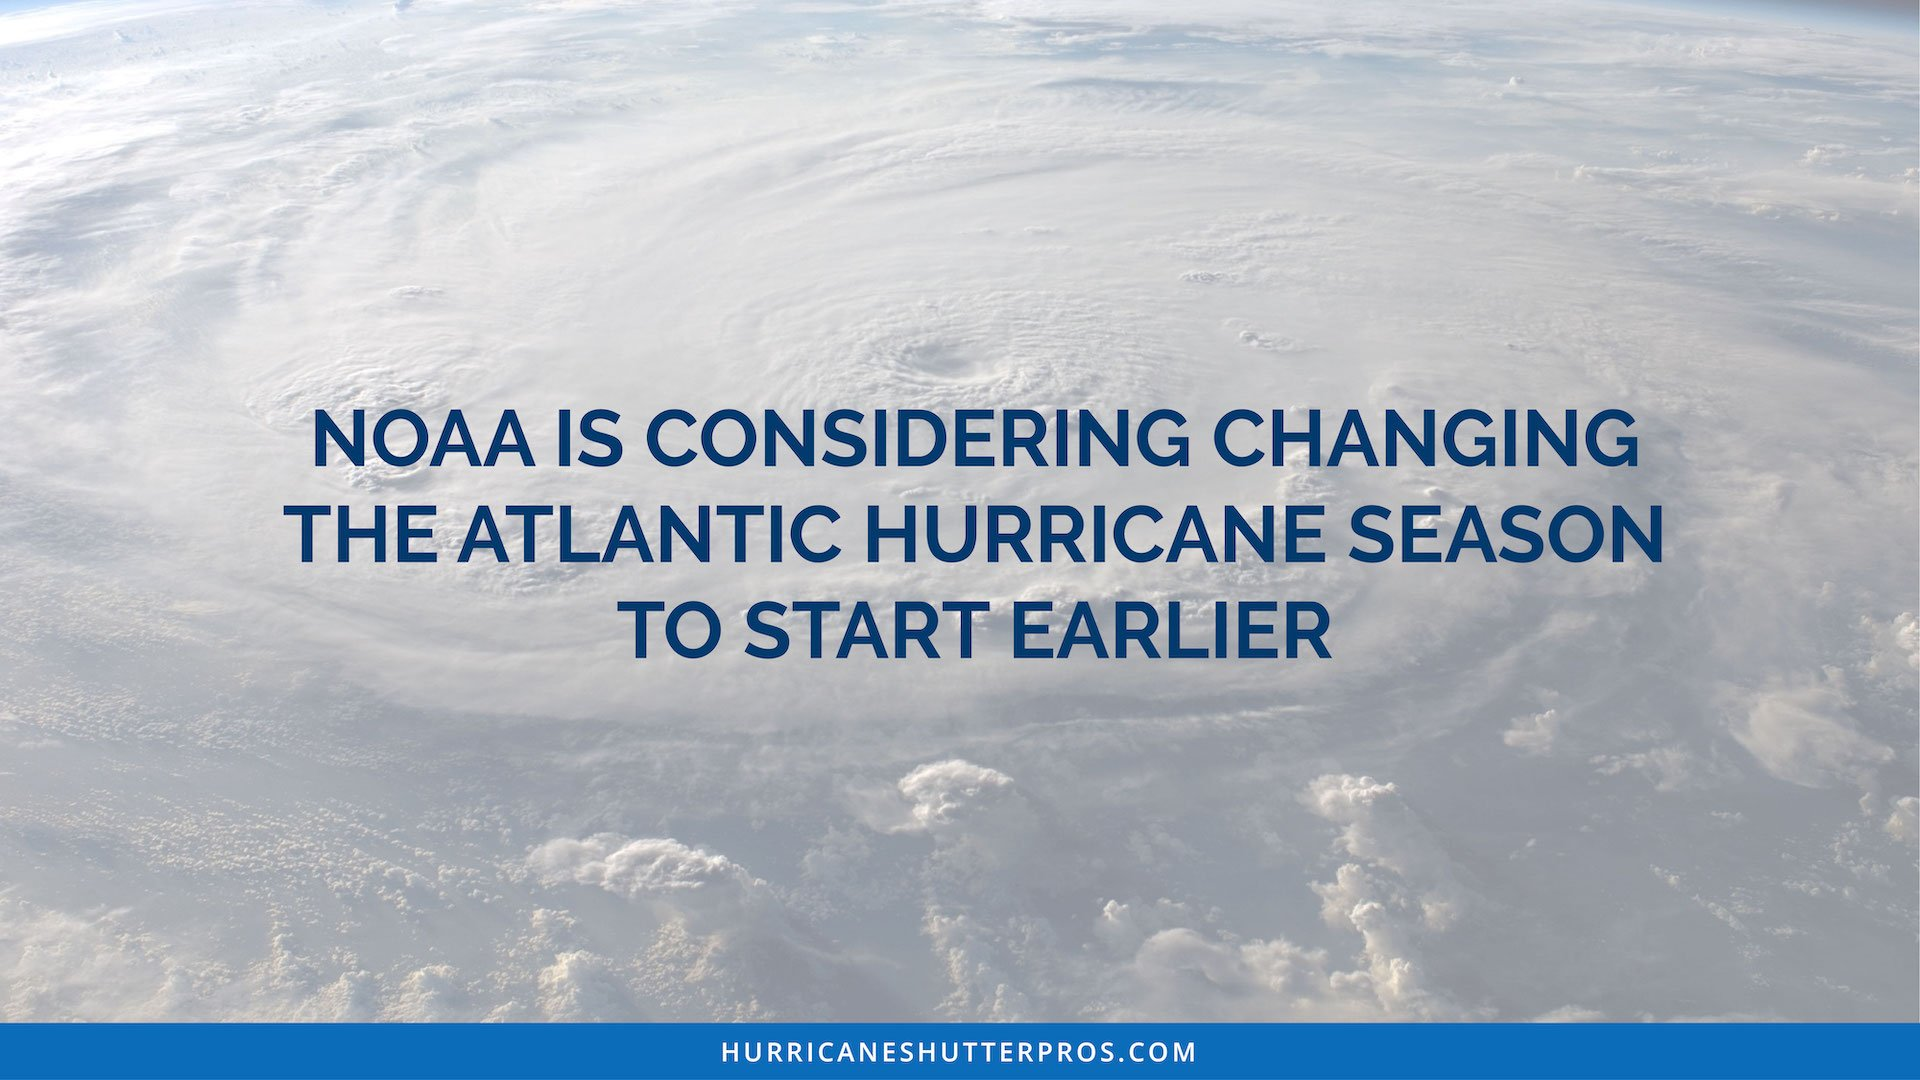 NOAA is Considering Changing the Atlantic Hurricane Season to Start Earlier